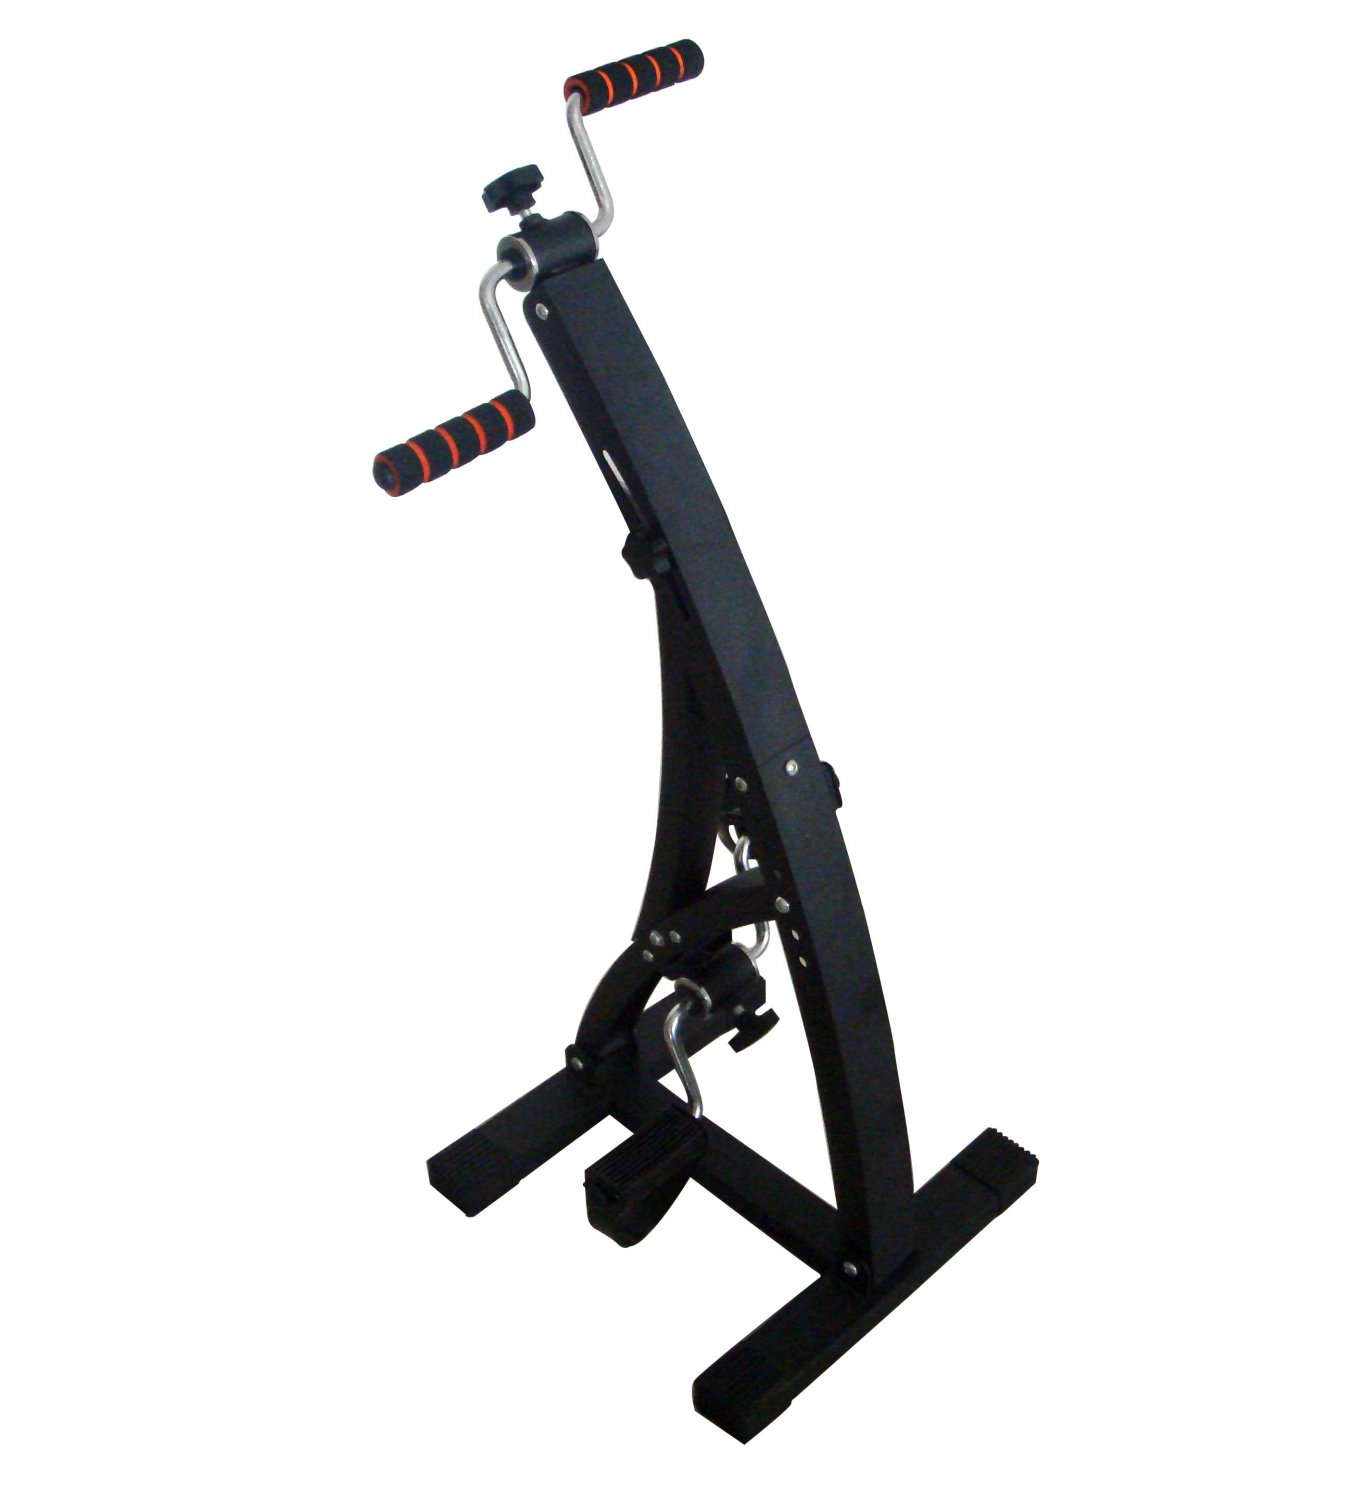 carepeutic betaflex total body mini exercise bike work out. Black Bedroom Furniture Sets. Home Design Ideas